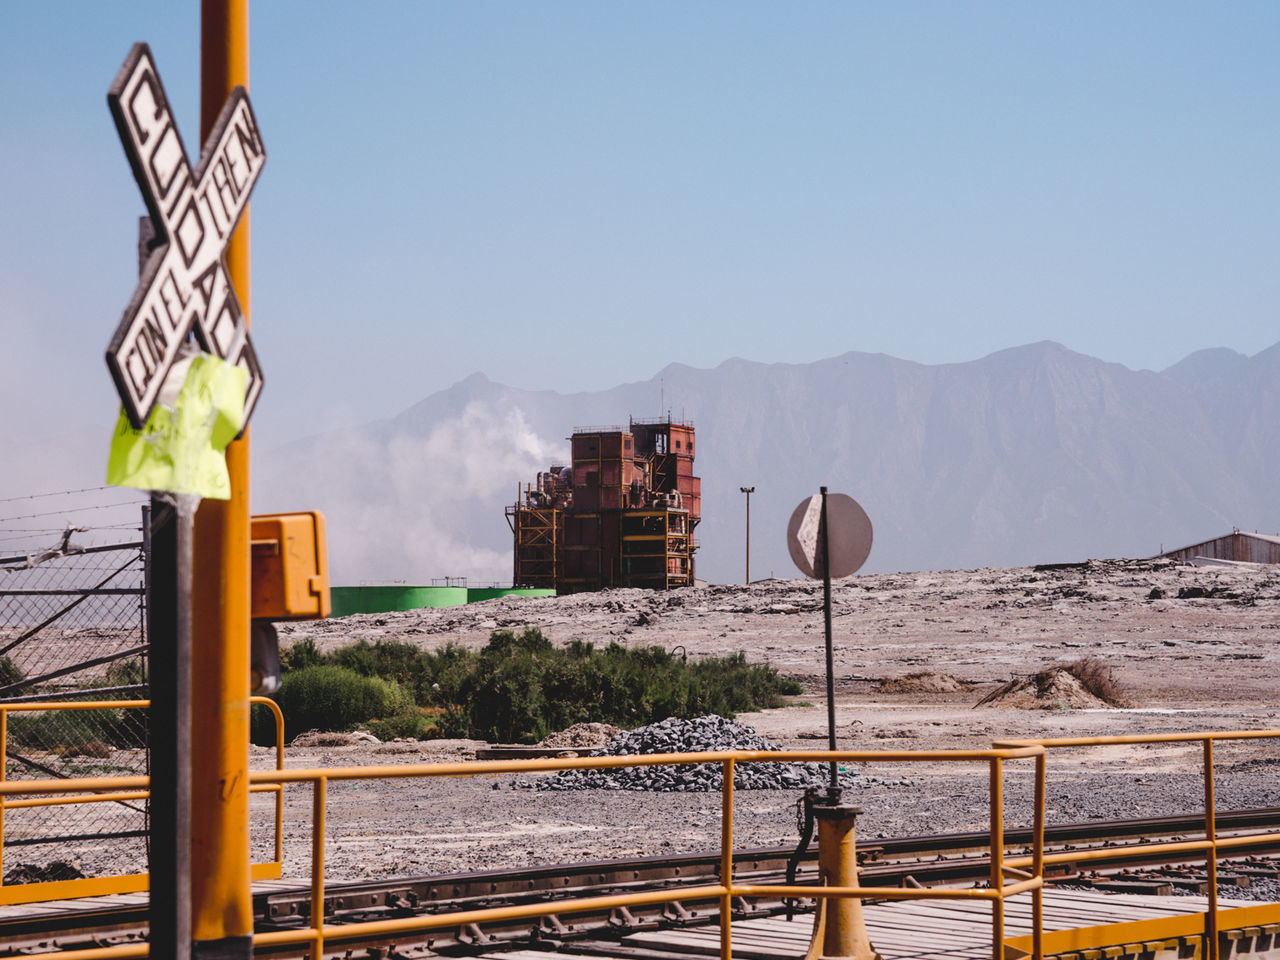 Beauty In Nature Blue Culture Day Factory Factory Building Factory Chimney Industrial Industrial Landscapes Mexico Monterrey Mountain Mountain Range Mountains Nature No People Outdoors Pole Scenics Sky Train Train Tracks Tranquil Scene Tranquility Travel Destinations